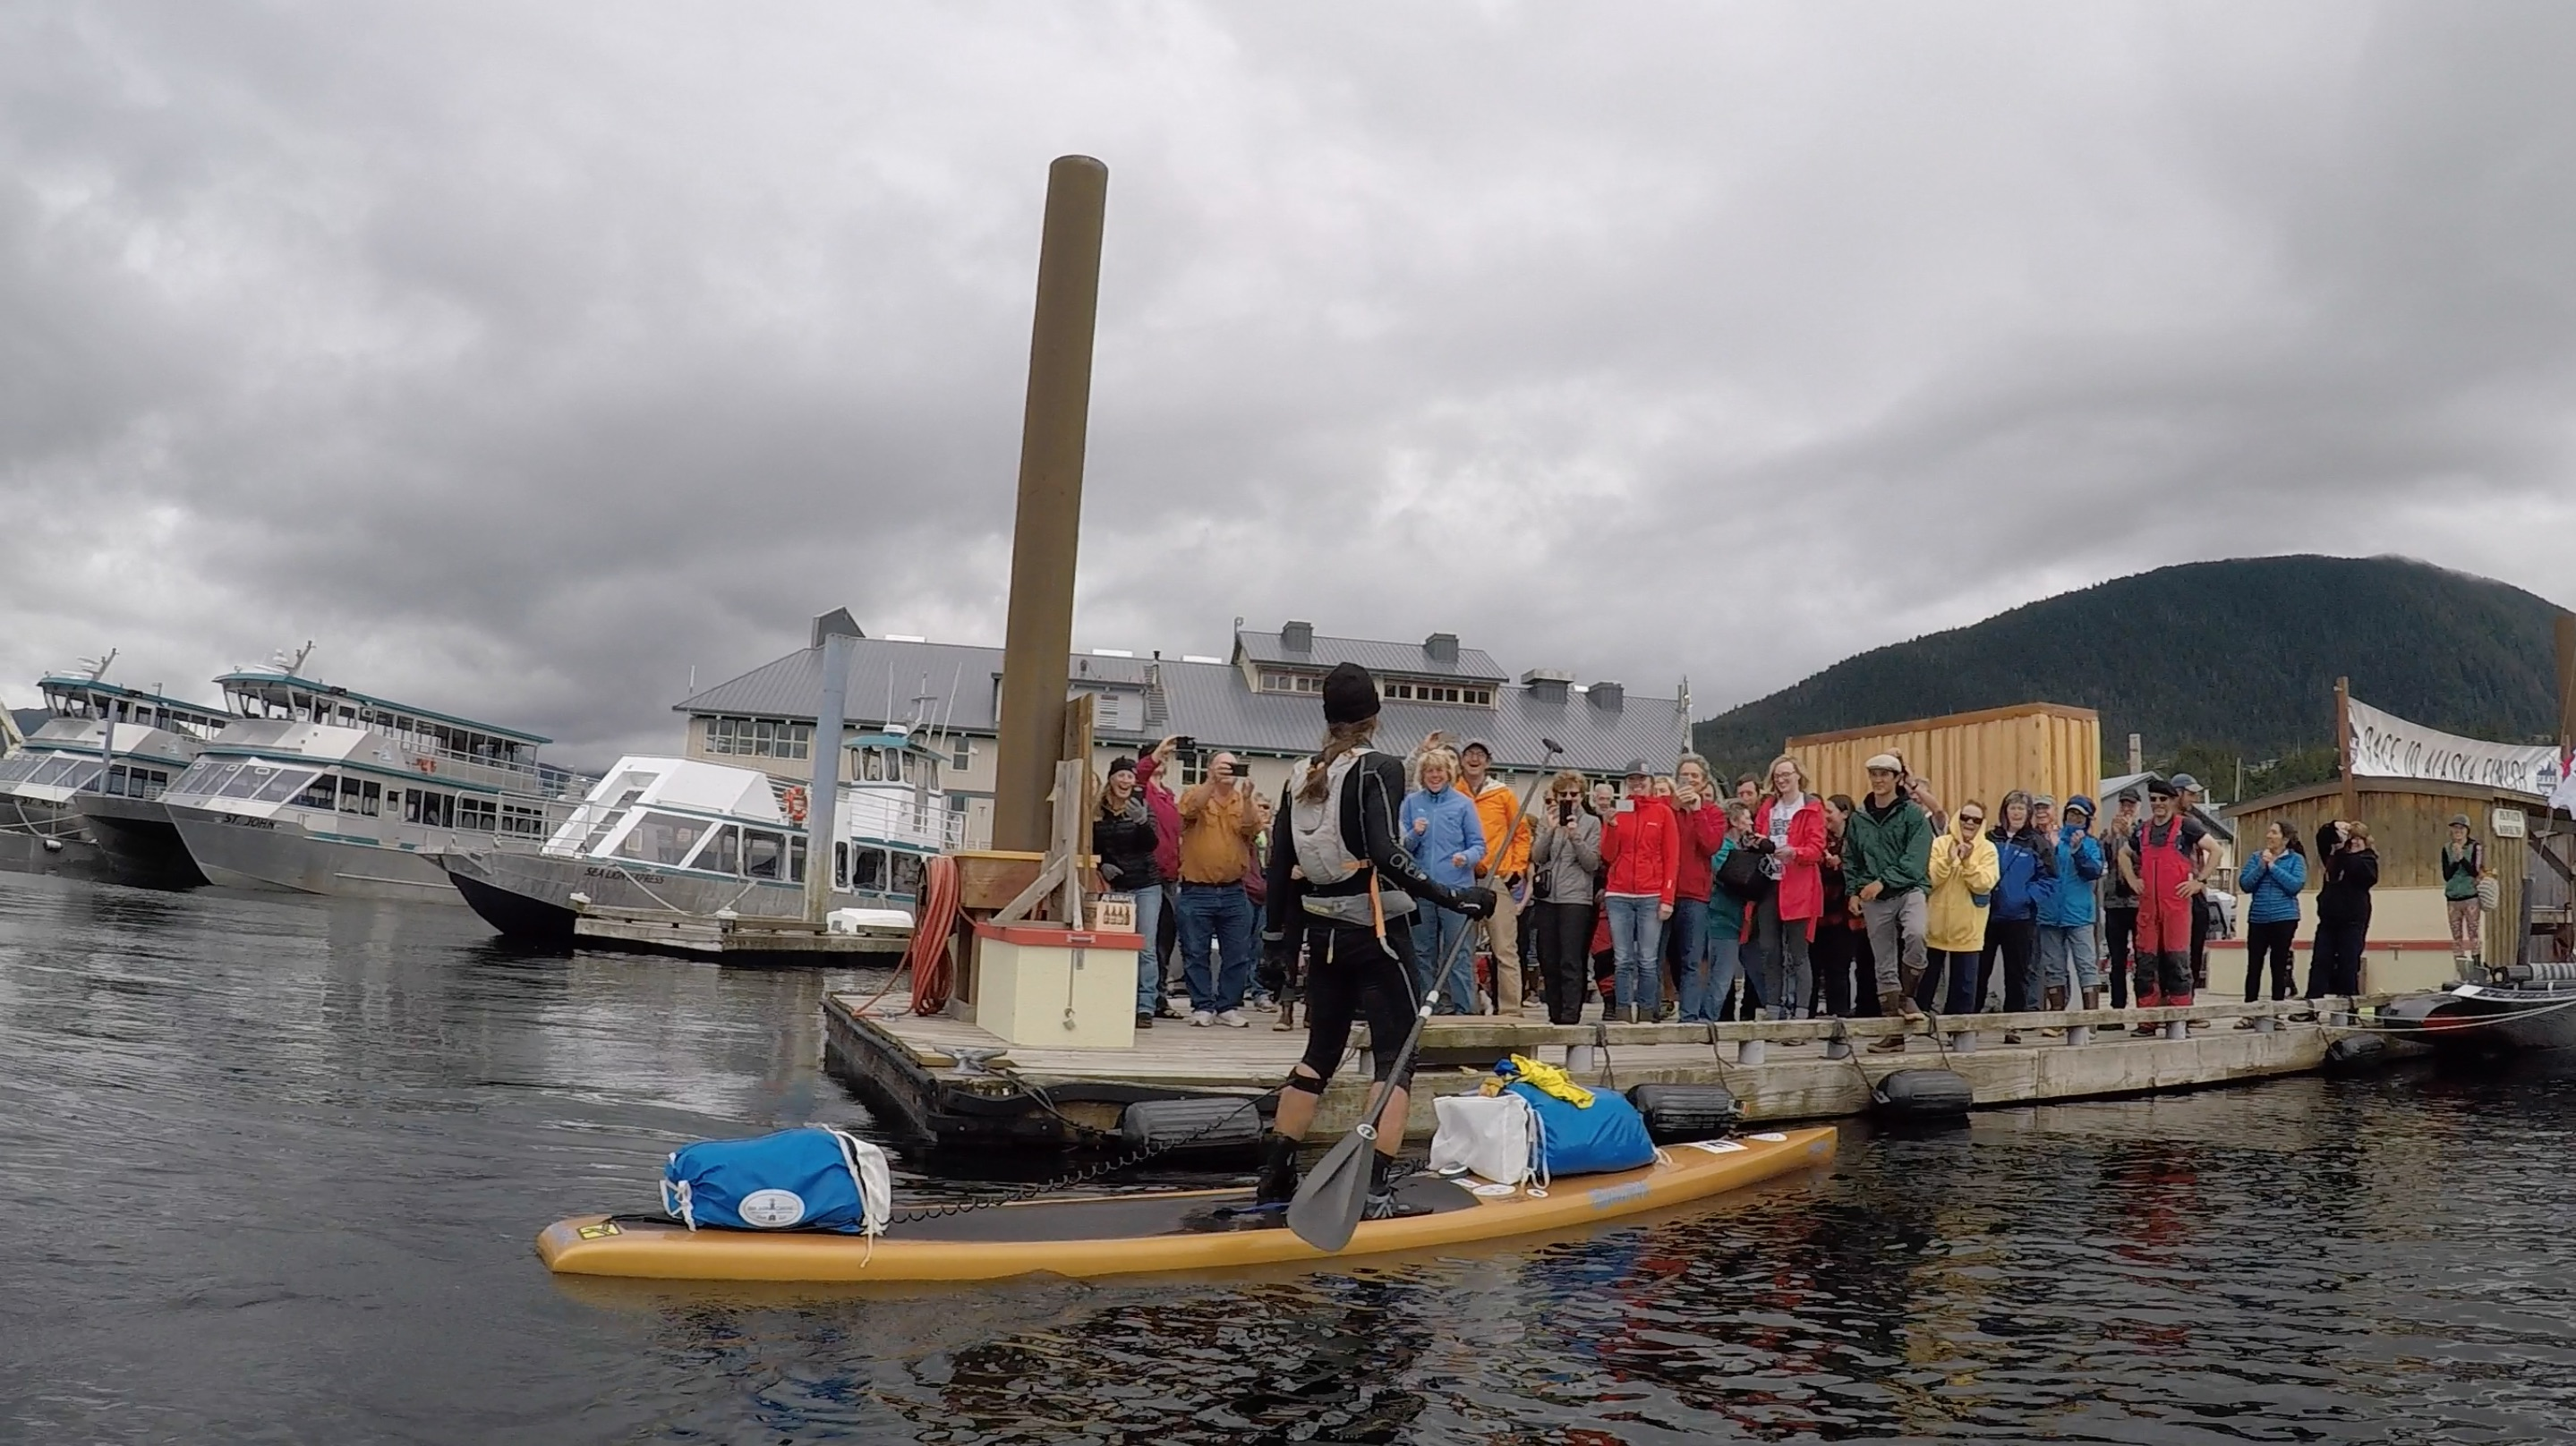 race to alaska, r2ak, Ketchikan, karl kruger, team heart of gold, zach carver